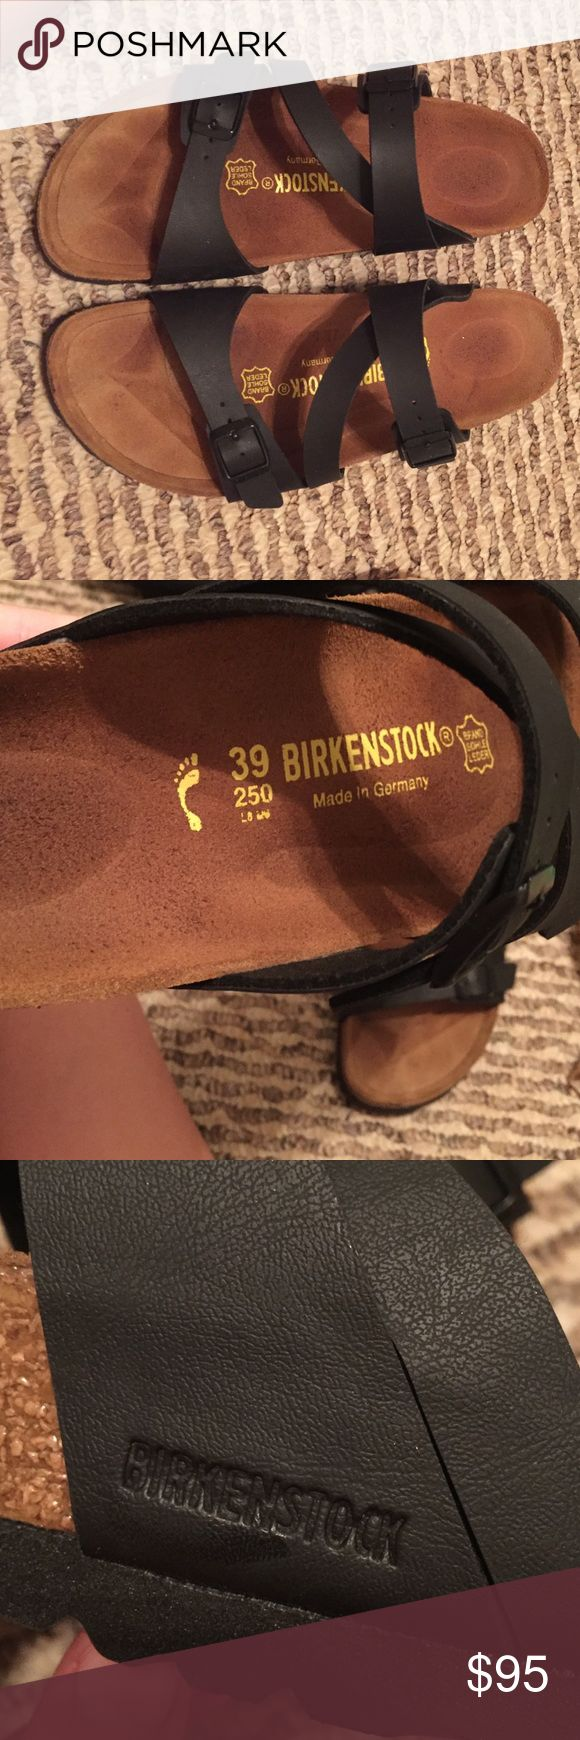 Size 39 Birkenstock Salina Hey guys! Funny story, I literally just bought these guys yesterday (6/7/16) at Kinnucan's; however, I didn't walk around in them. I just tried them on. I don't really want them anymore because my foot is just a tad bit too small, and the toe bar is a little uncomfortable just because my foot is too small. Other than where you can see my light foot imprint, these shoes are cute, comfortable, and basically new! Please don't ask to trade unless if you have a pair of…